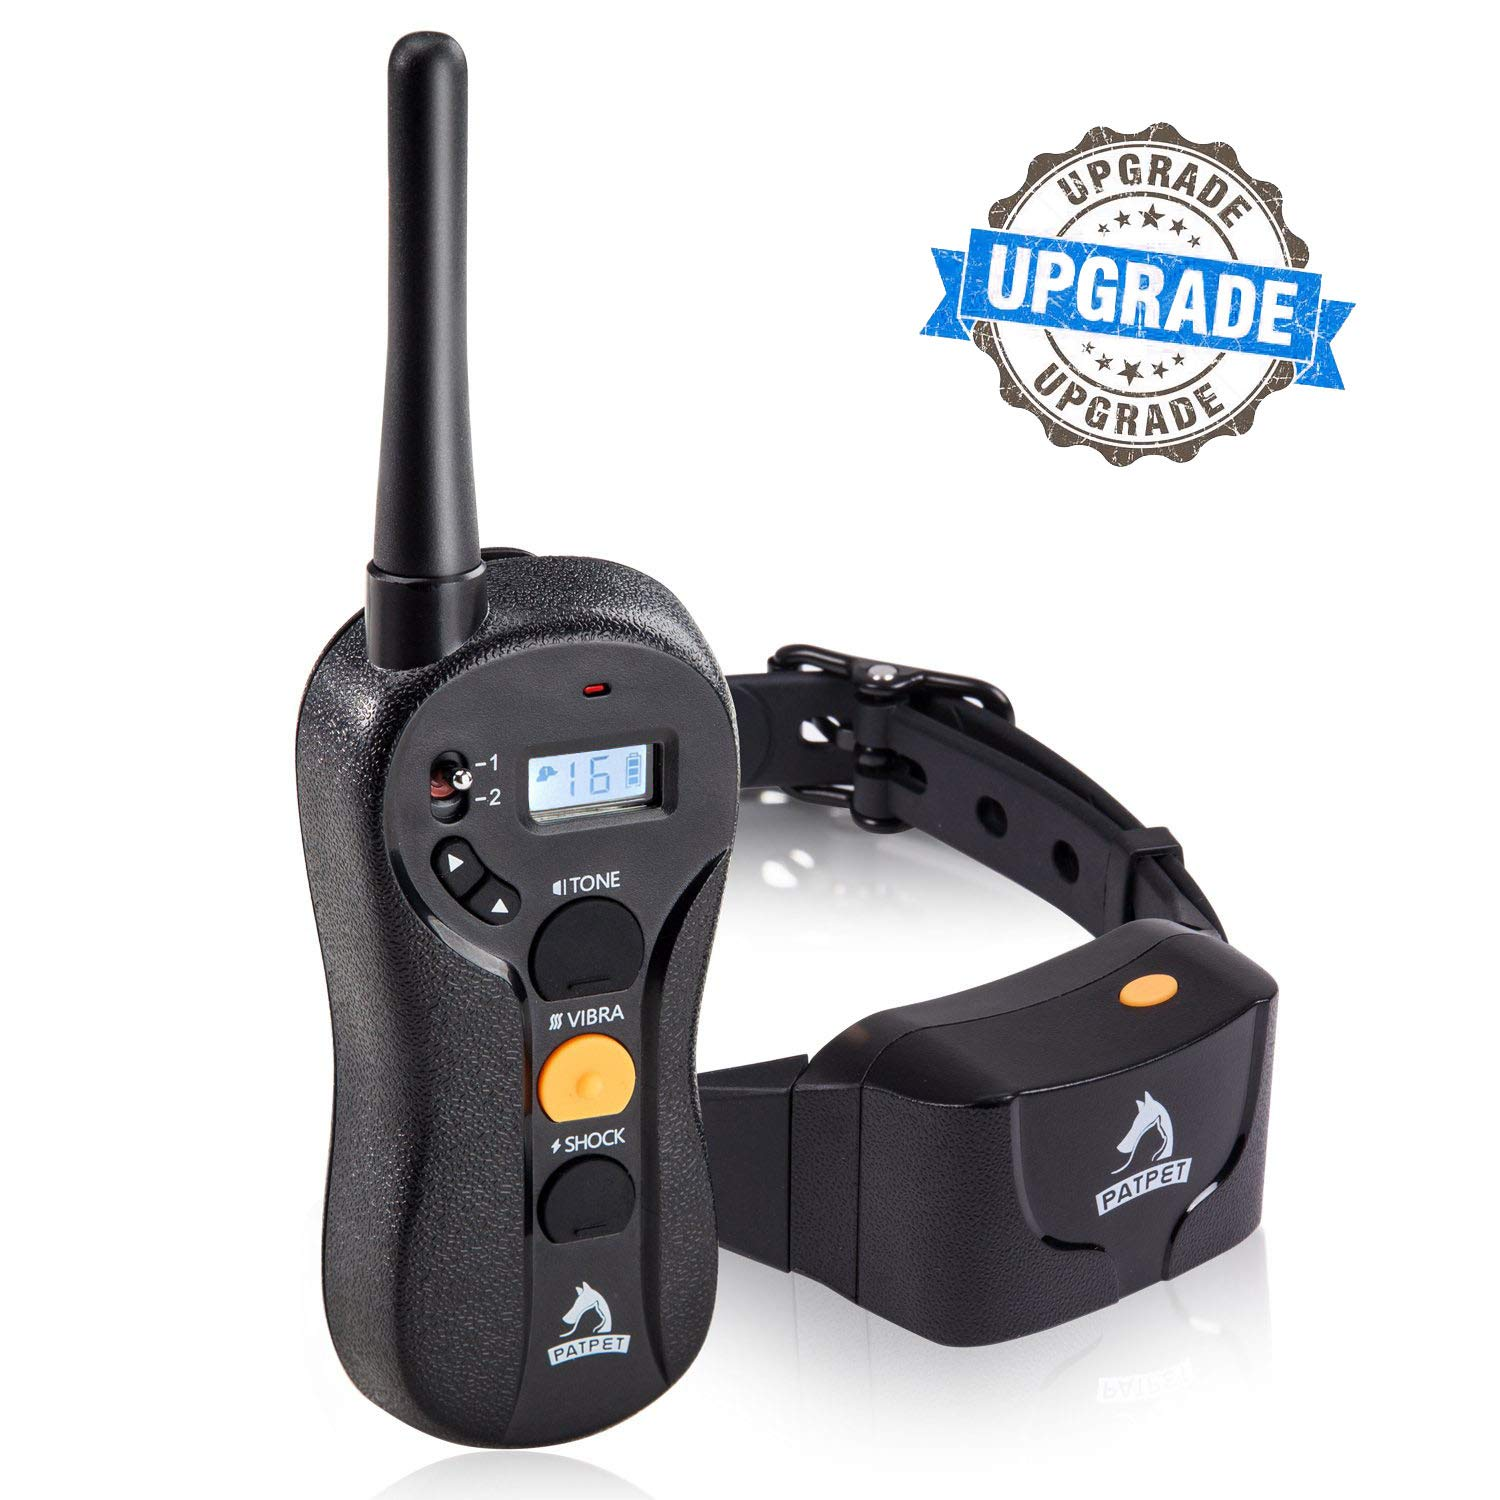 PATPET Dog Training Collar - Upgraded 1000Yd Remote Range,Blind Operation Remote Controlled, Rechargeable & Waterproof,Dog Shock Collar with Beep/Vibration/Shock Mode, Easy to Train Dogs by PATPET